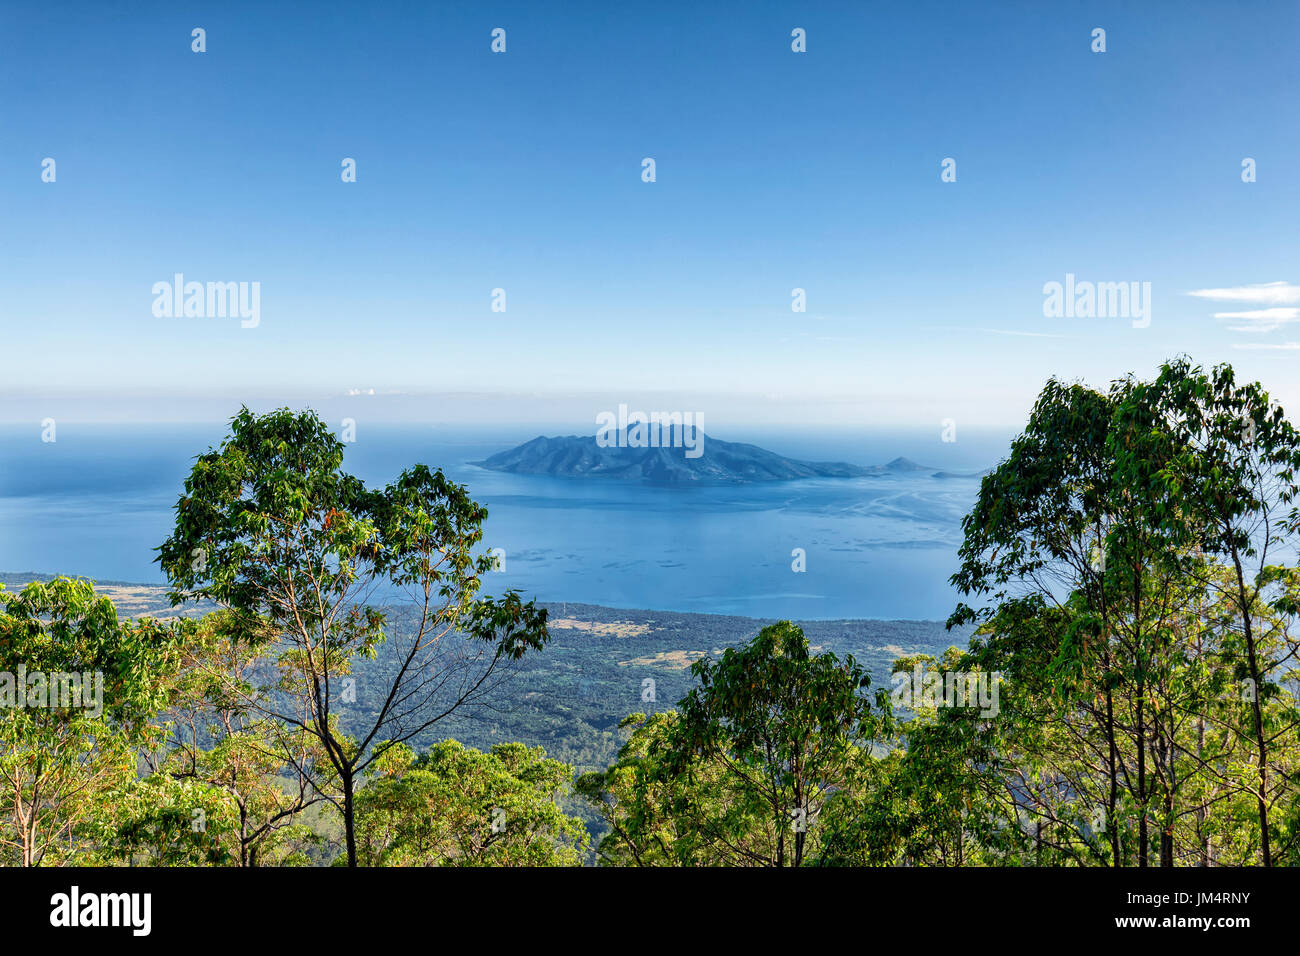 View of Pulau Besar island from Mount Egon, a stratovolcano on Flores in Indonesia. - Stock Image